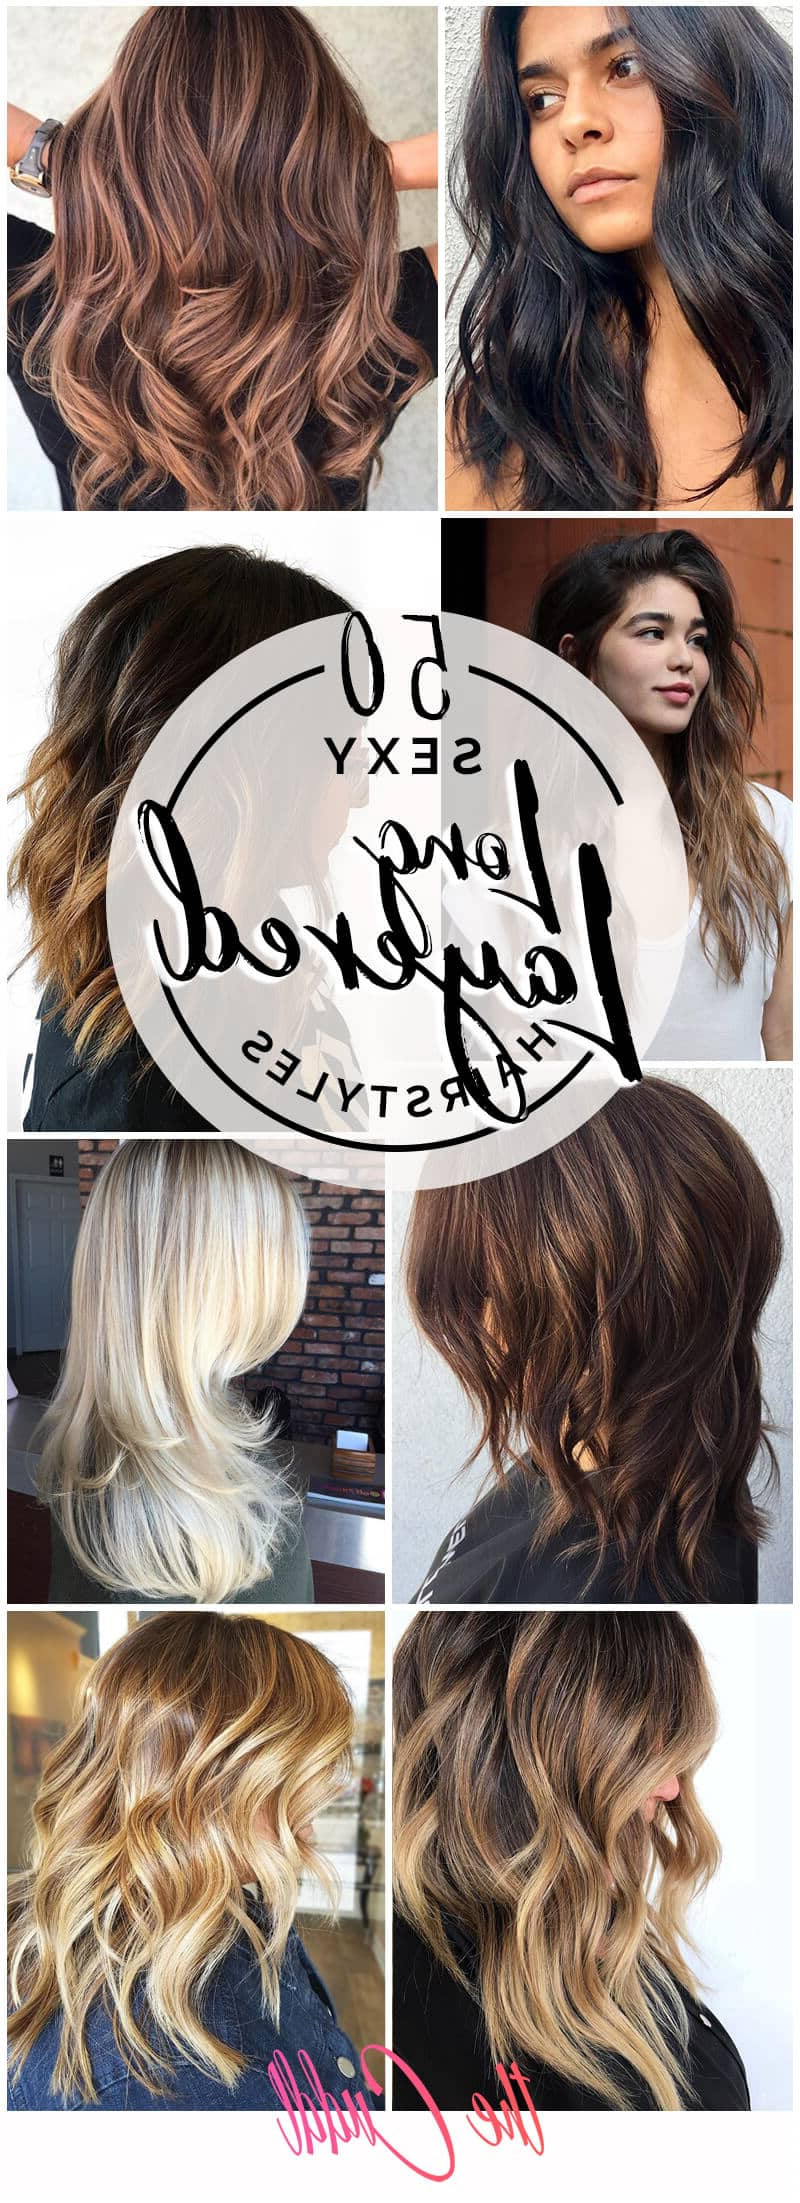 50 Sexy Long Layered Hair Ideas To Create Effortless Style In 2018 Inside Silver Balayage Bob Haircuts With Swoopy Layers (View 6 of 20)